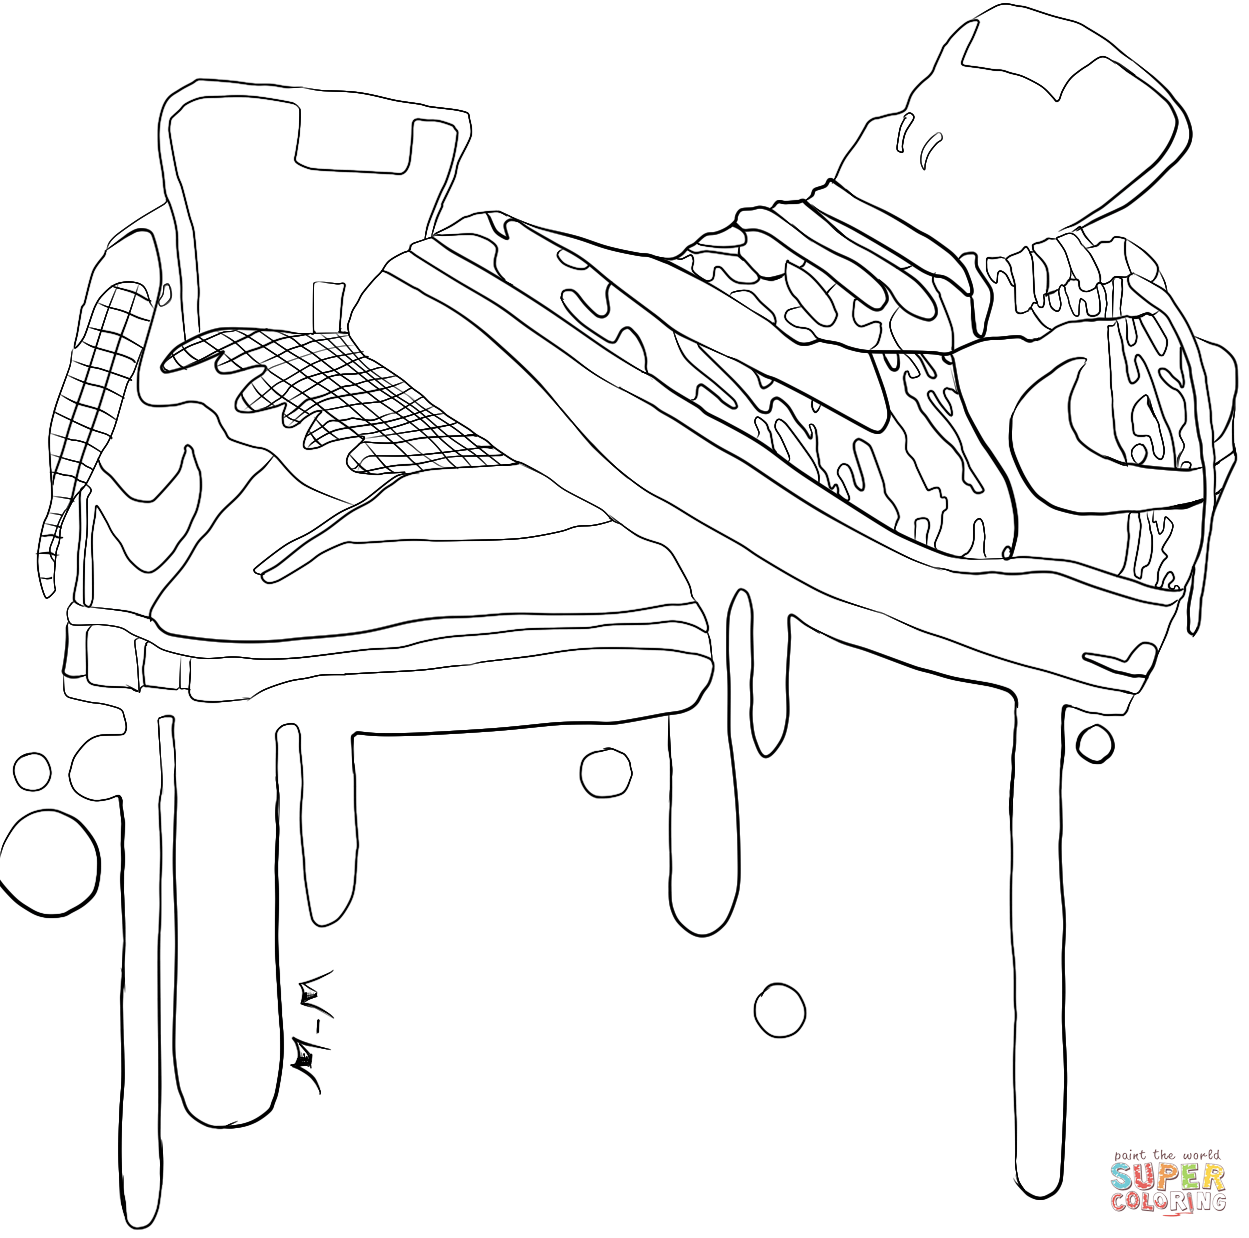 Clothes and Shoes coloring pages | Free Coloring Pages